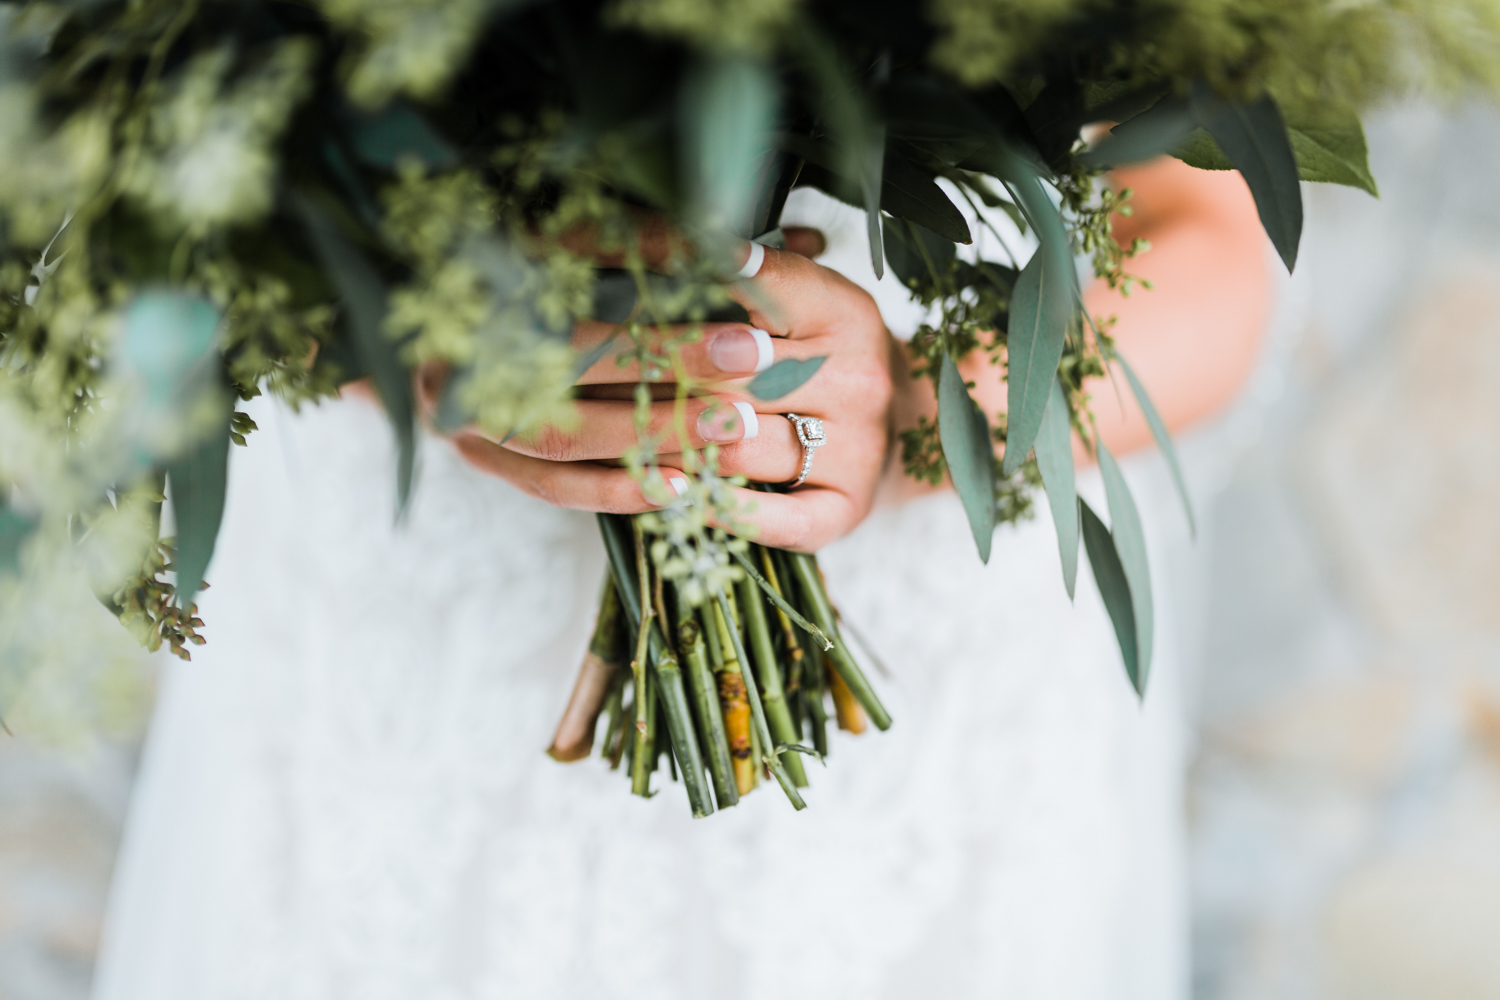 Florists near White Hall, MD - top rated Maryland wedding photo and video husband and wife team